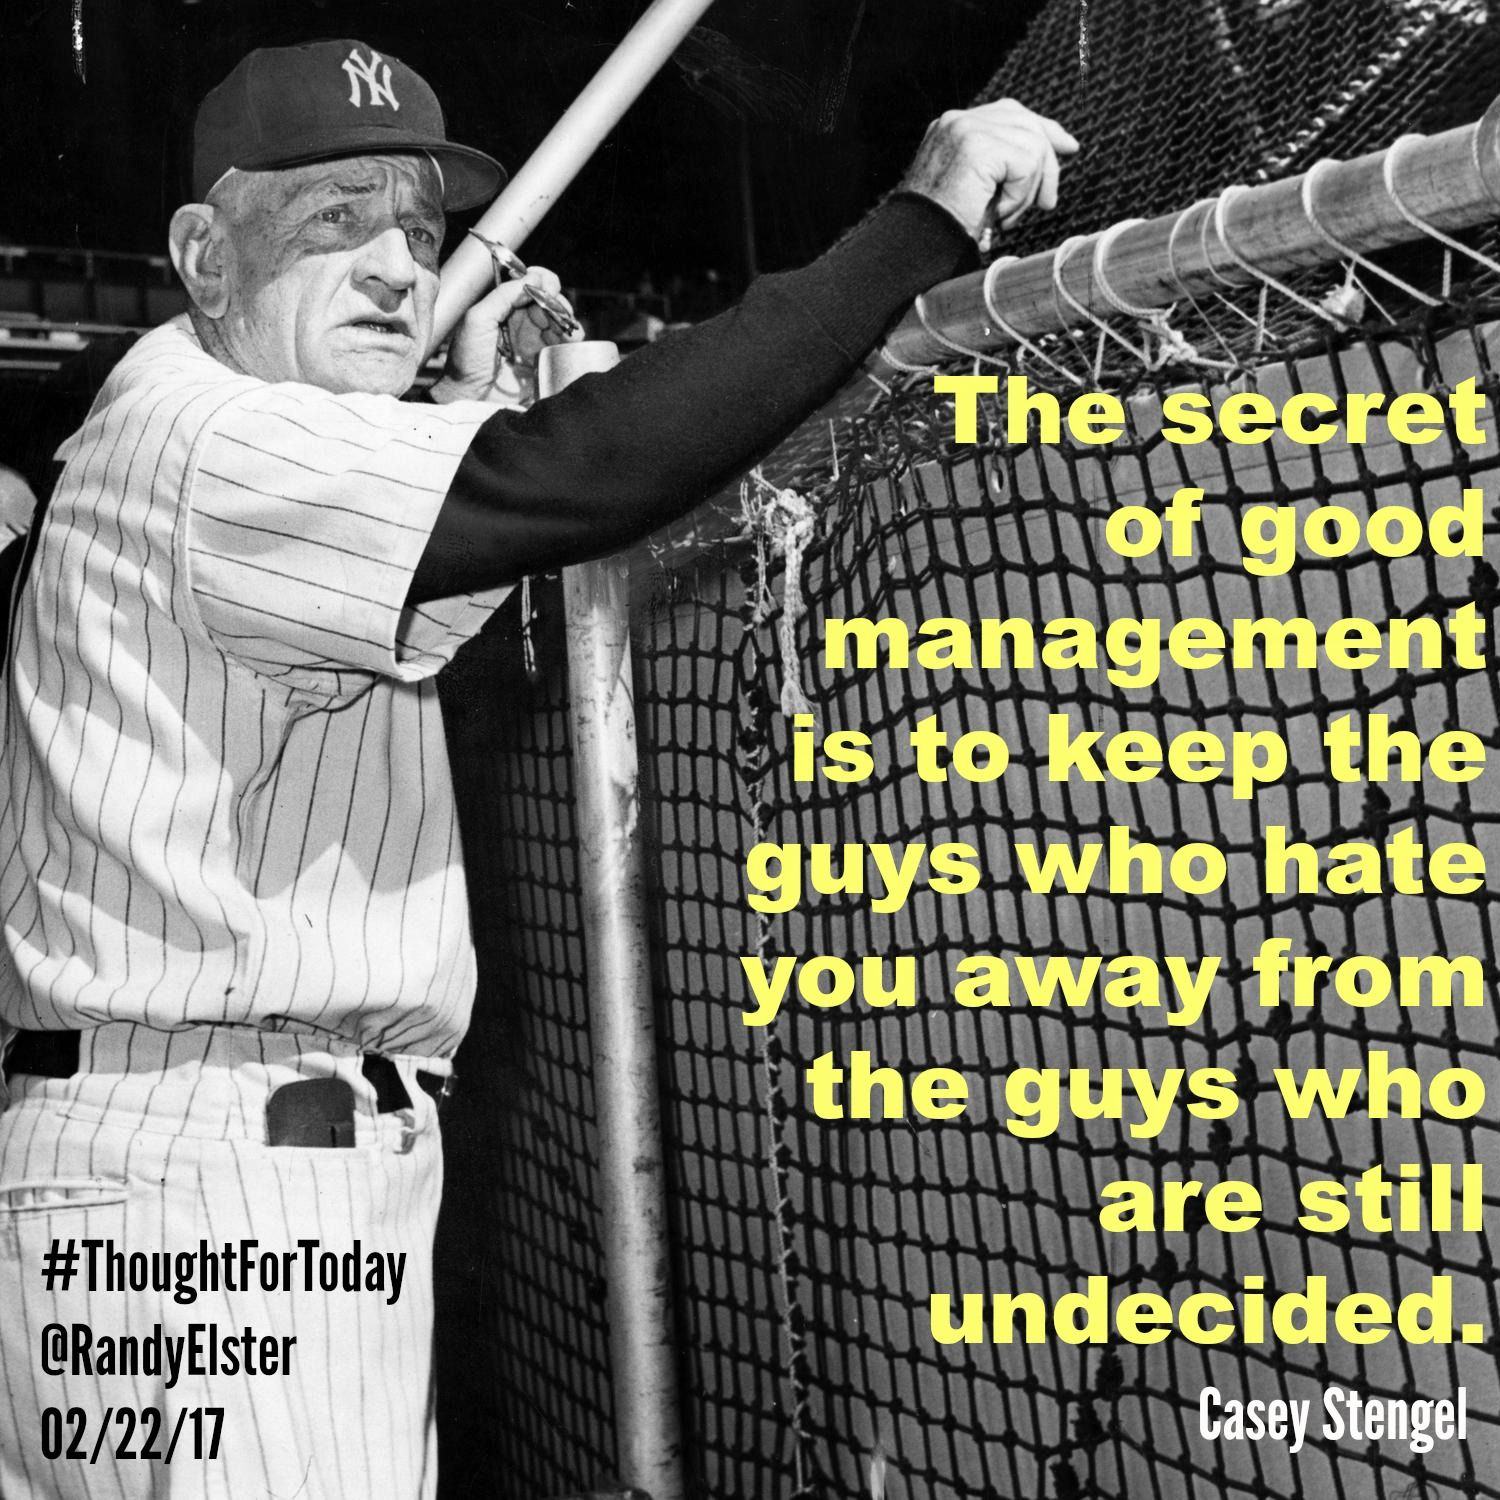 The secret of good management is to keep the guys who hate you away from the guys who are still undecided. Casey Stengel #ThoughtForToday